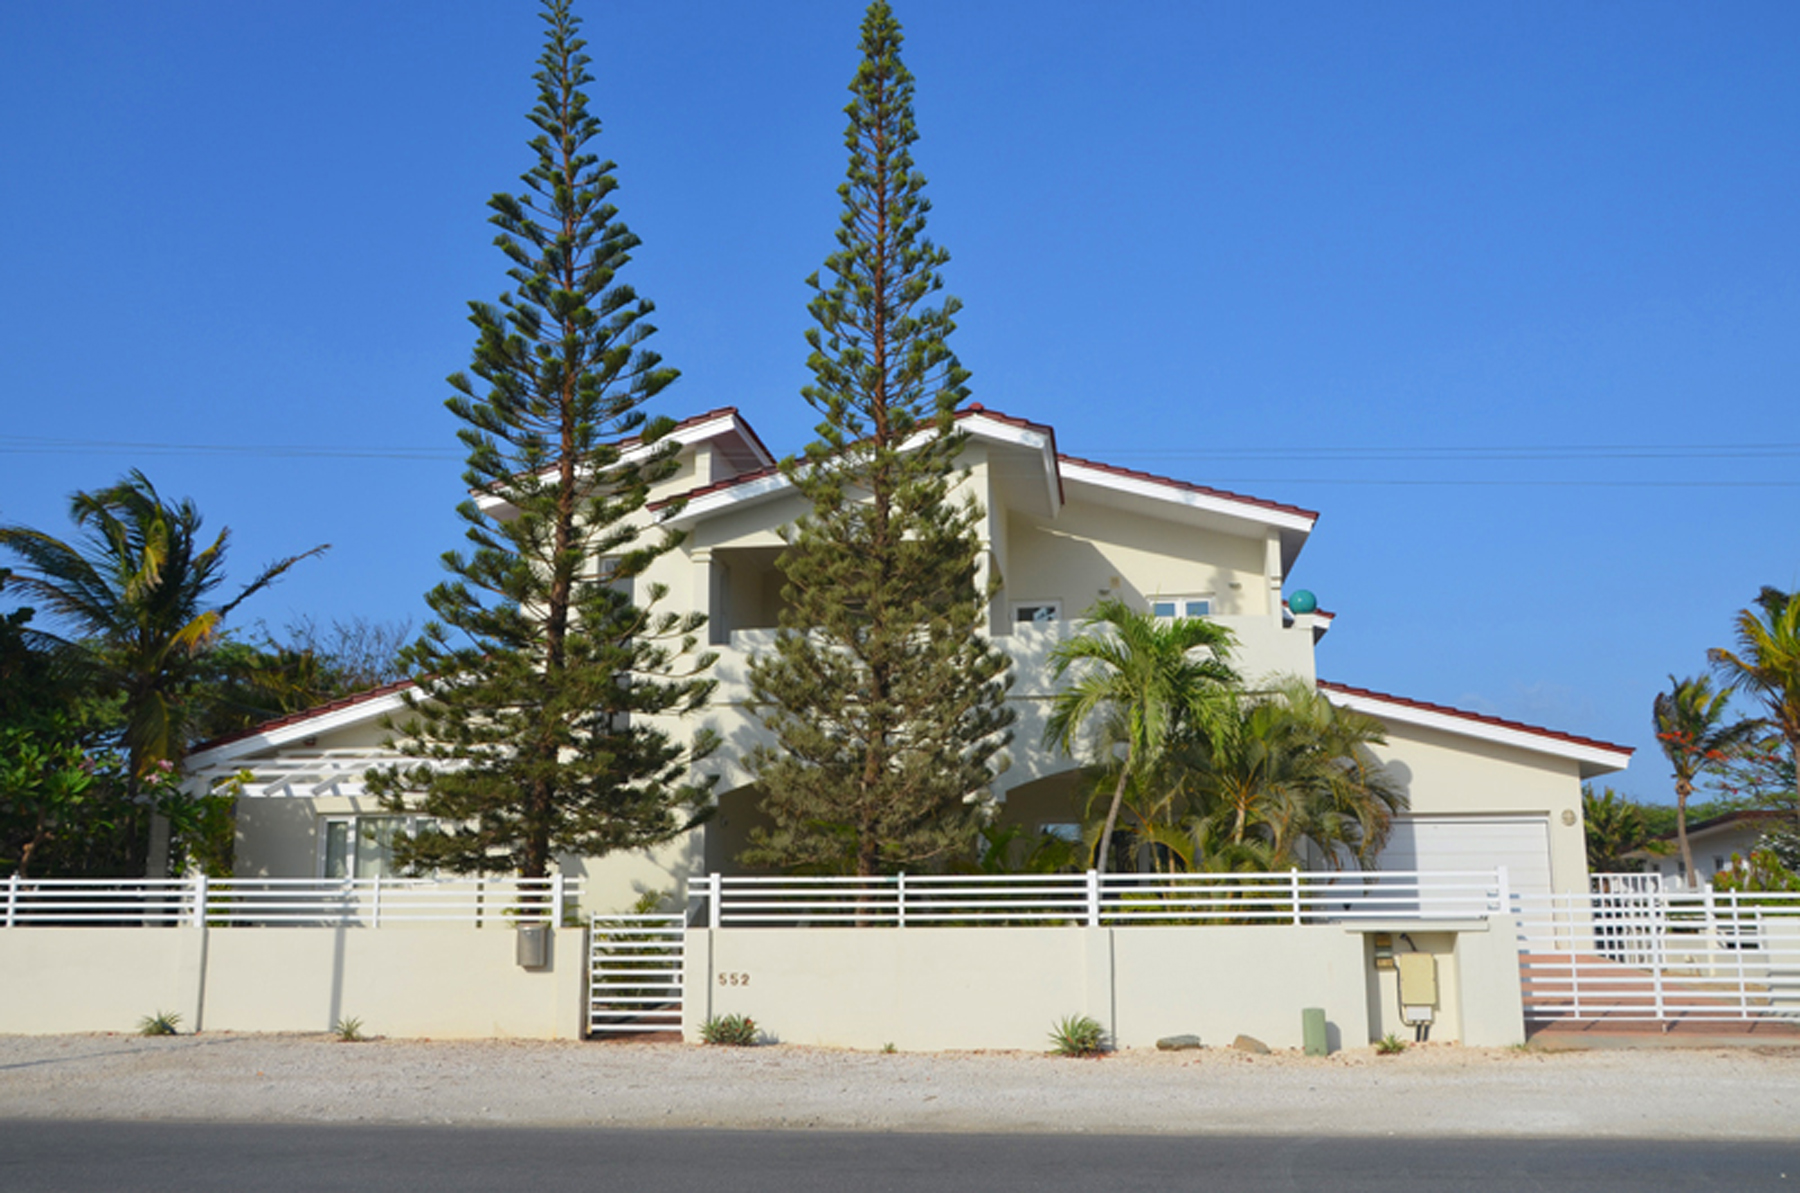 Single Family Home for Rent at 'sGravendeel Villa Malmok, Aruba Aruba